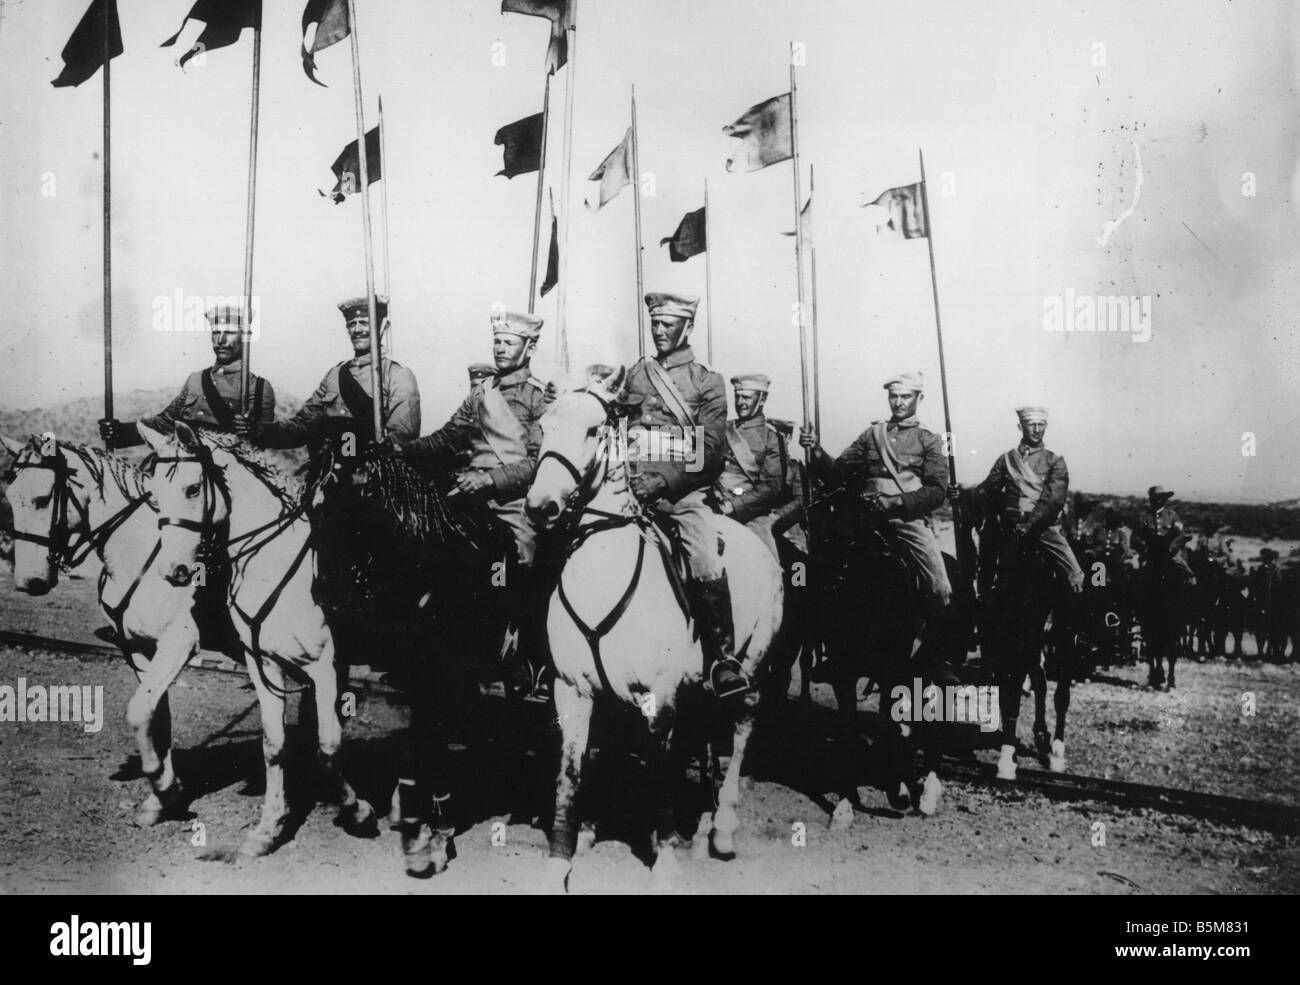 2 G55 A1 1914 5 German Cavalry Photo History World War One German cavalry Photo no location or date - Stock Image